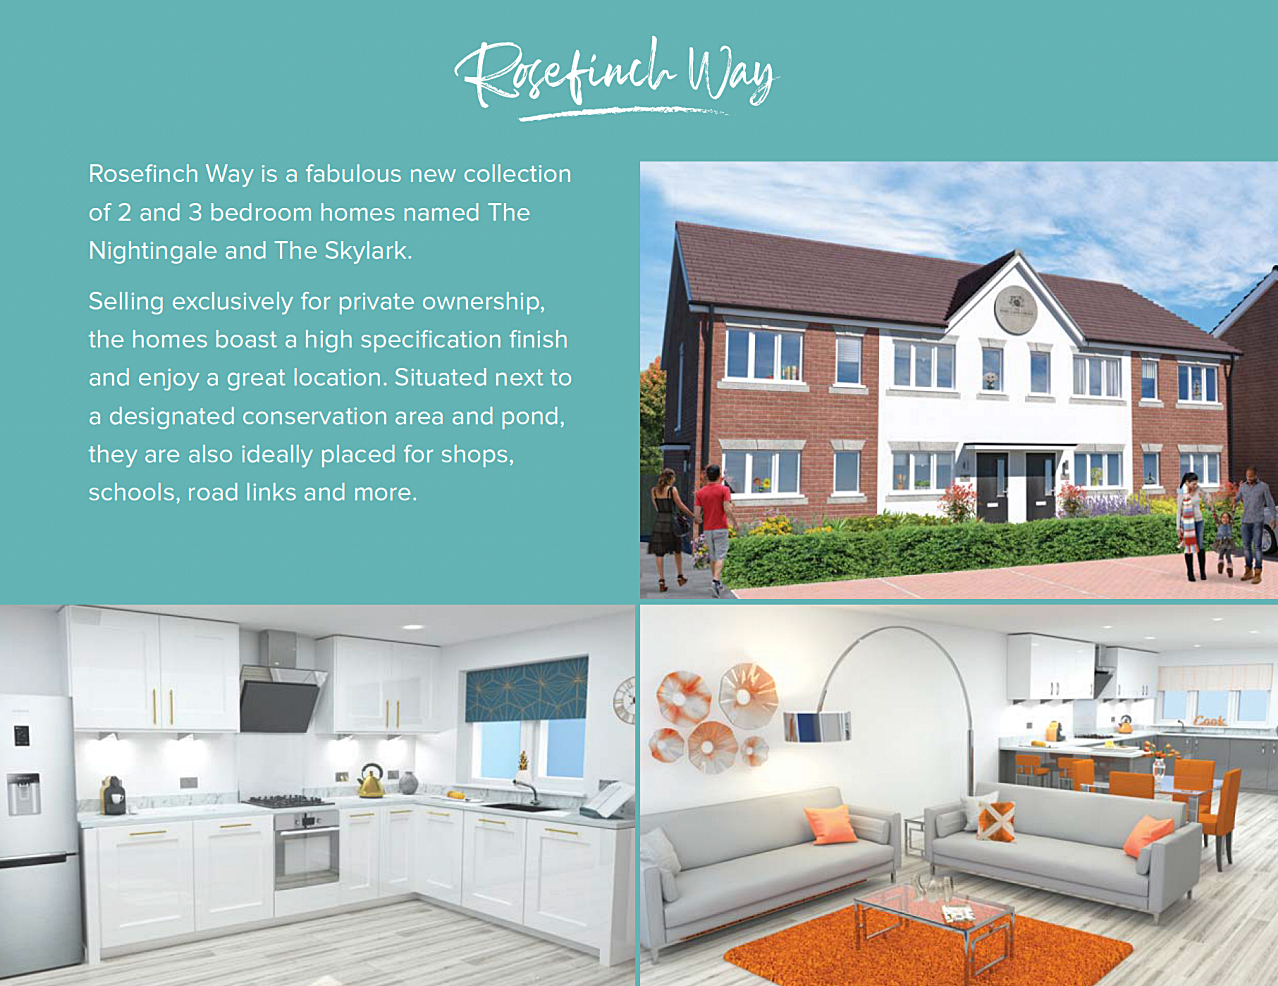 Rosefinch Way brochure image